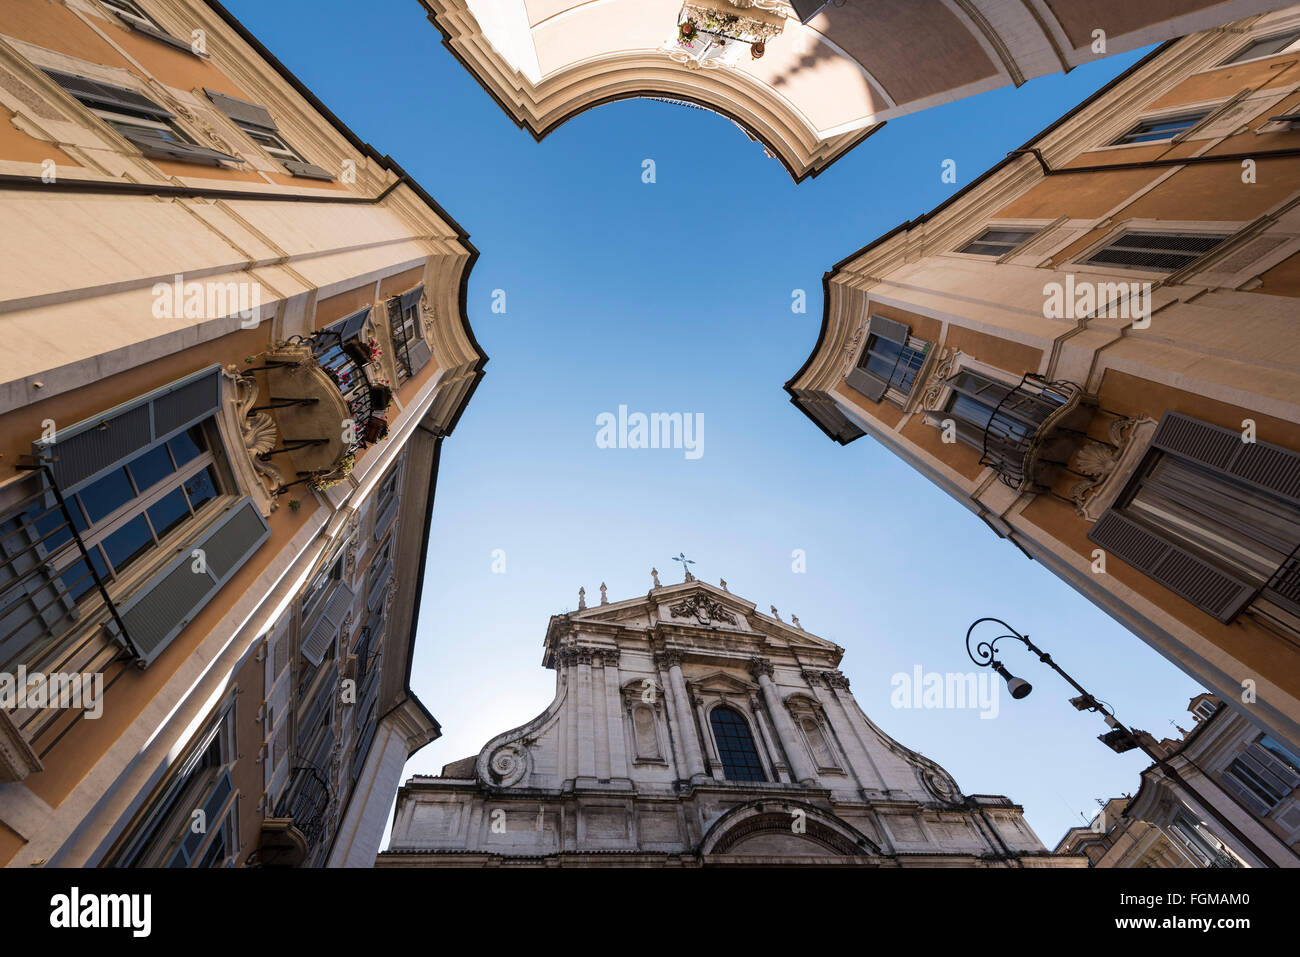 Rome. Italy. Church of St. Ignatius of Loyola at Campus Martius (Chiesa di Sant'Ignazio di Loyola), Piazza Sant'Ignazio. - Stock Image